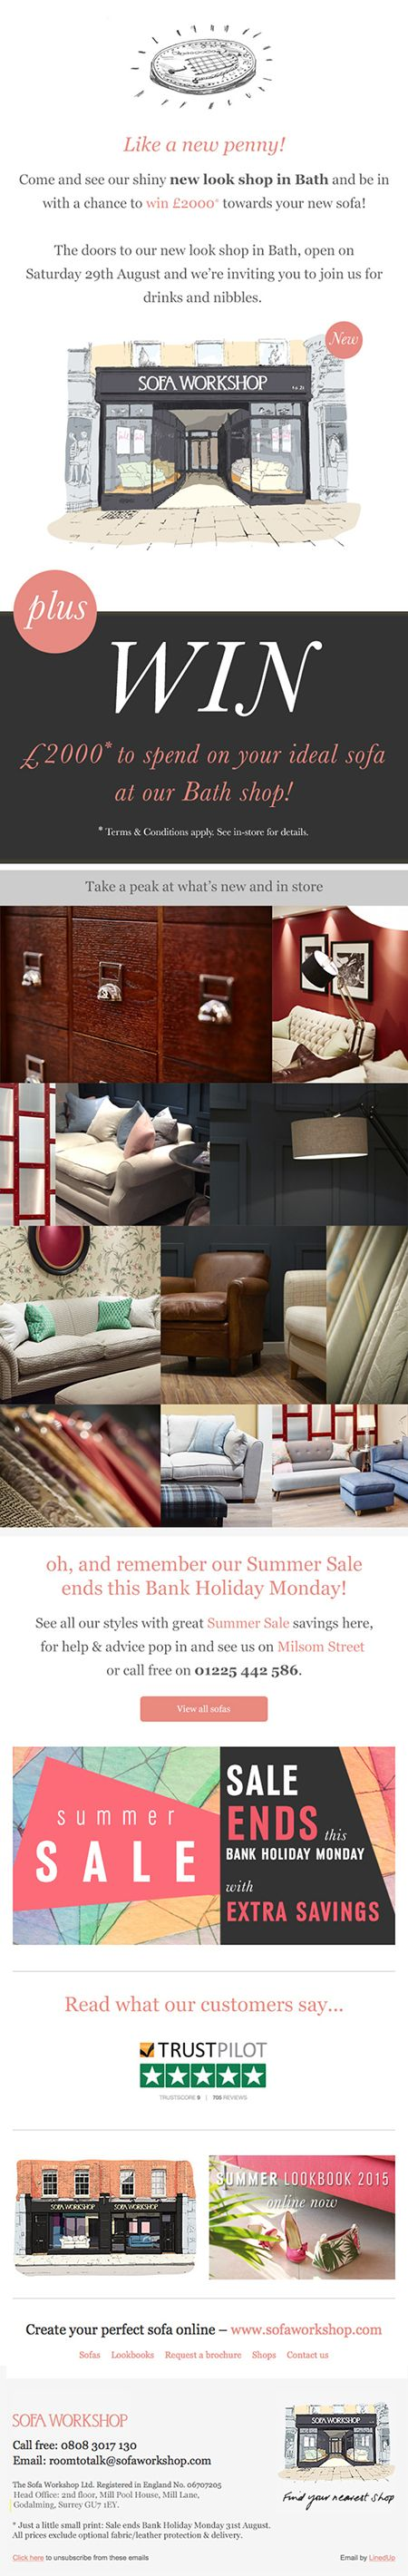 Sofa Workshop Easter Sale